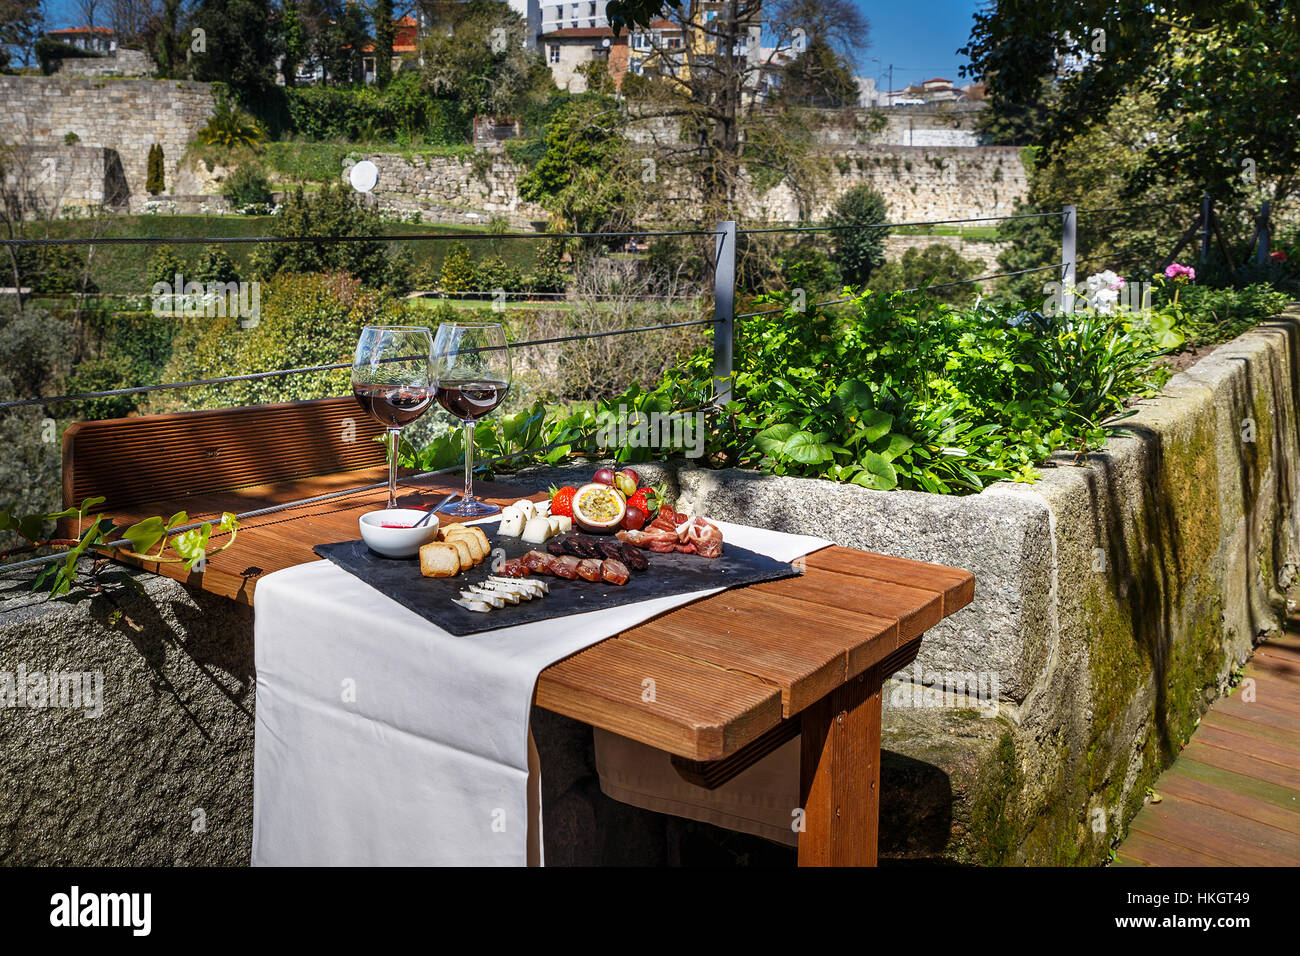 Table set with wine, chese and fruit - Stock Image